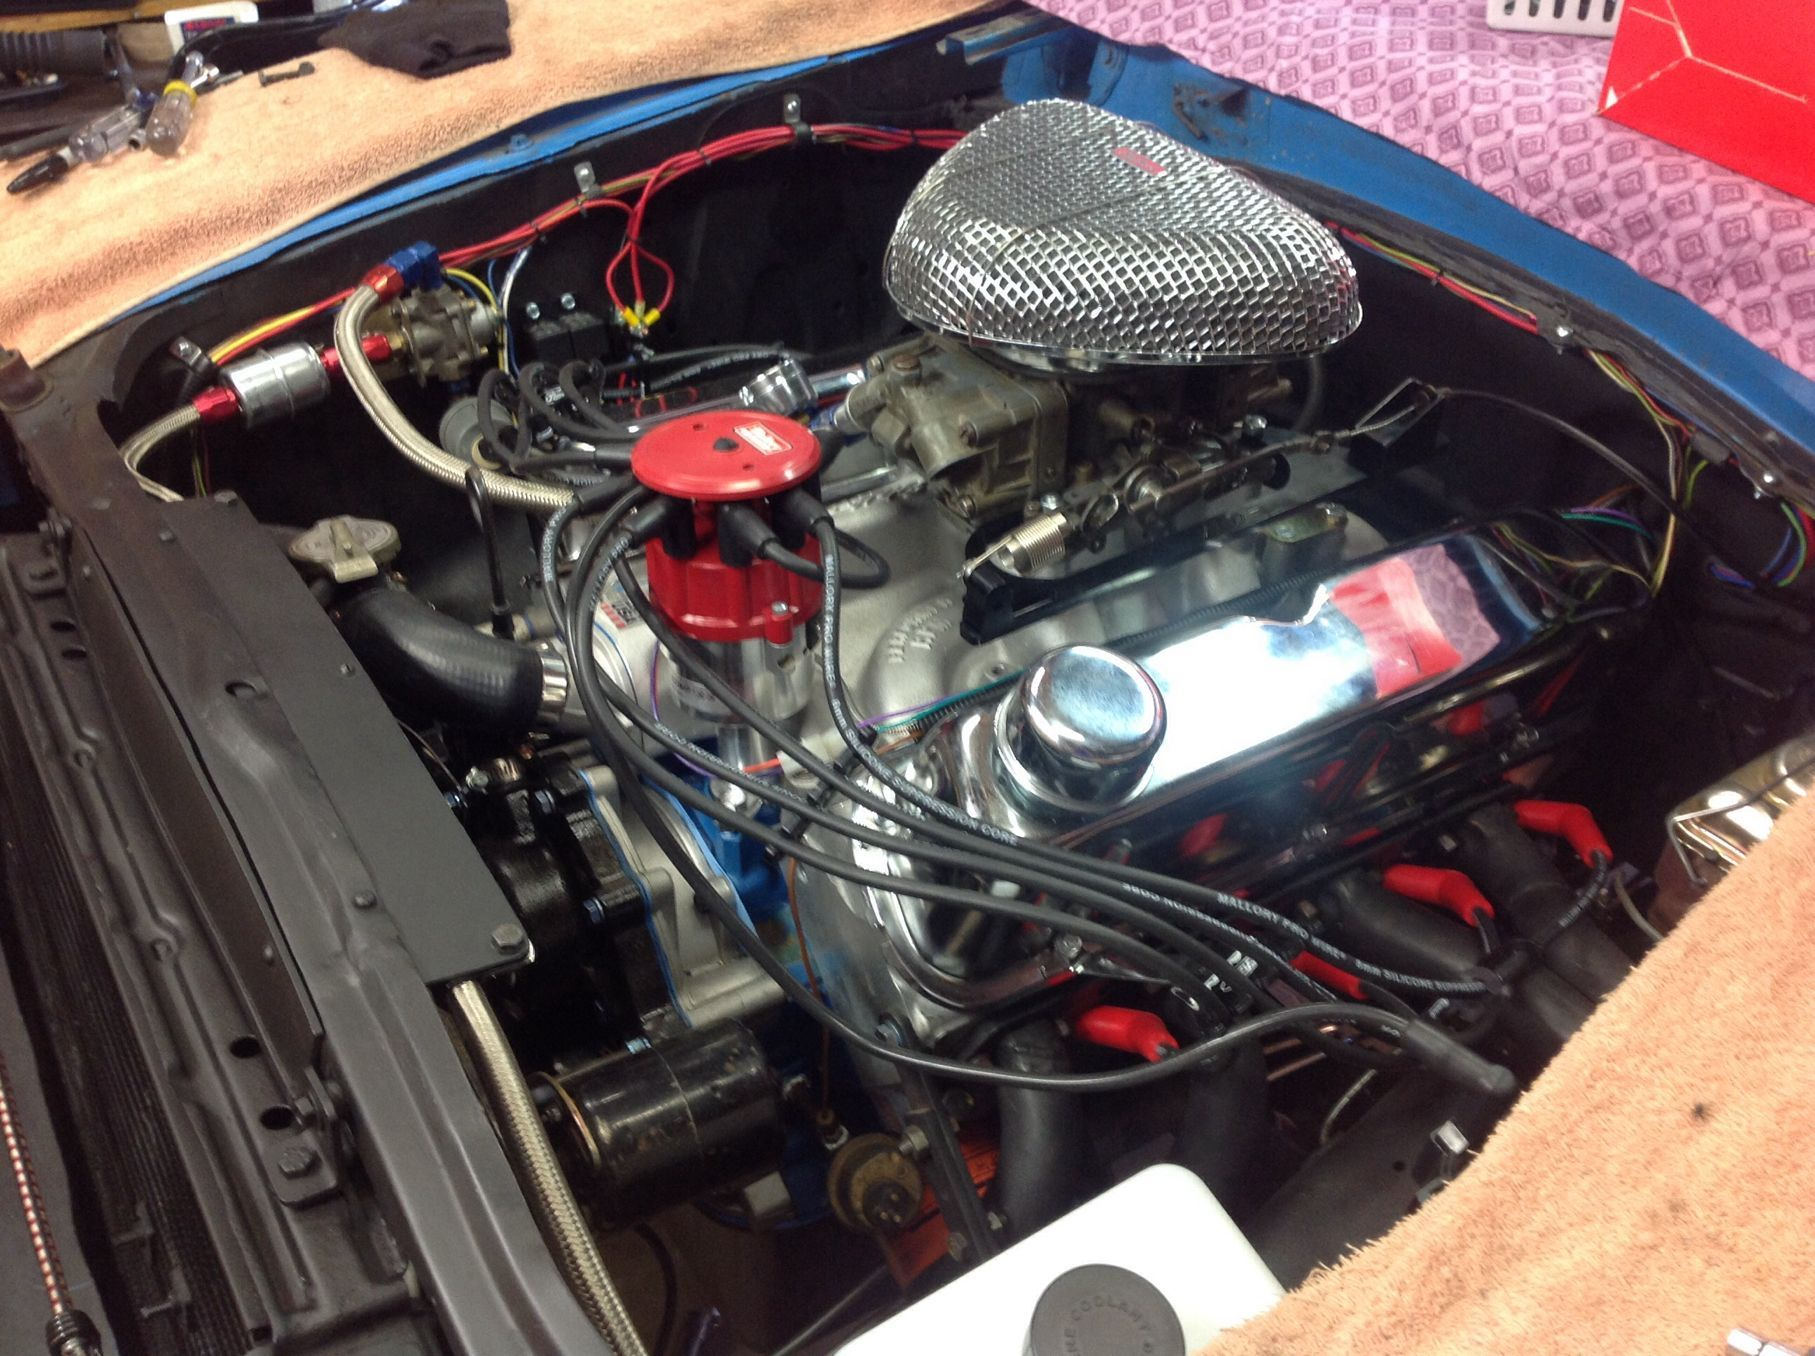 306ci crate engine small block ford style longblock aluminum blueprint engines customer robert thiel has recently installed our bp3060ct into his 1971 ford pinto robert loves his blueprint engine and becoming a malvernweather Images